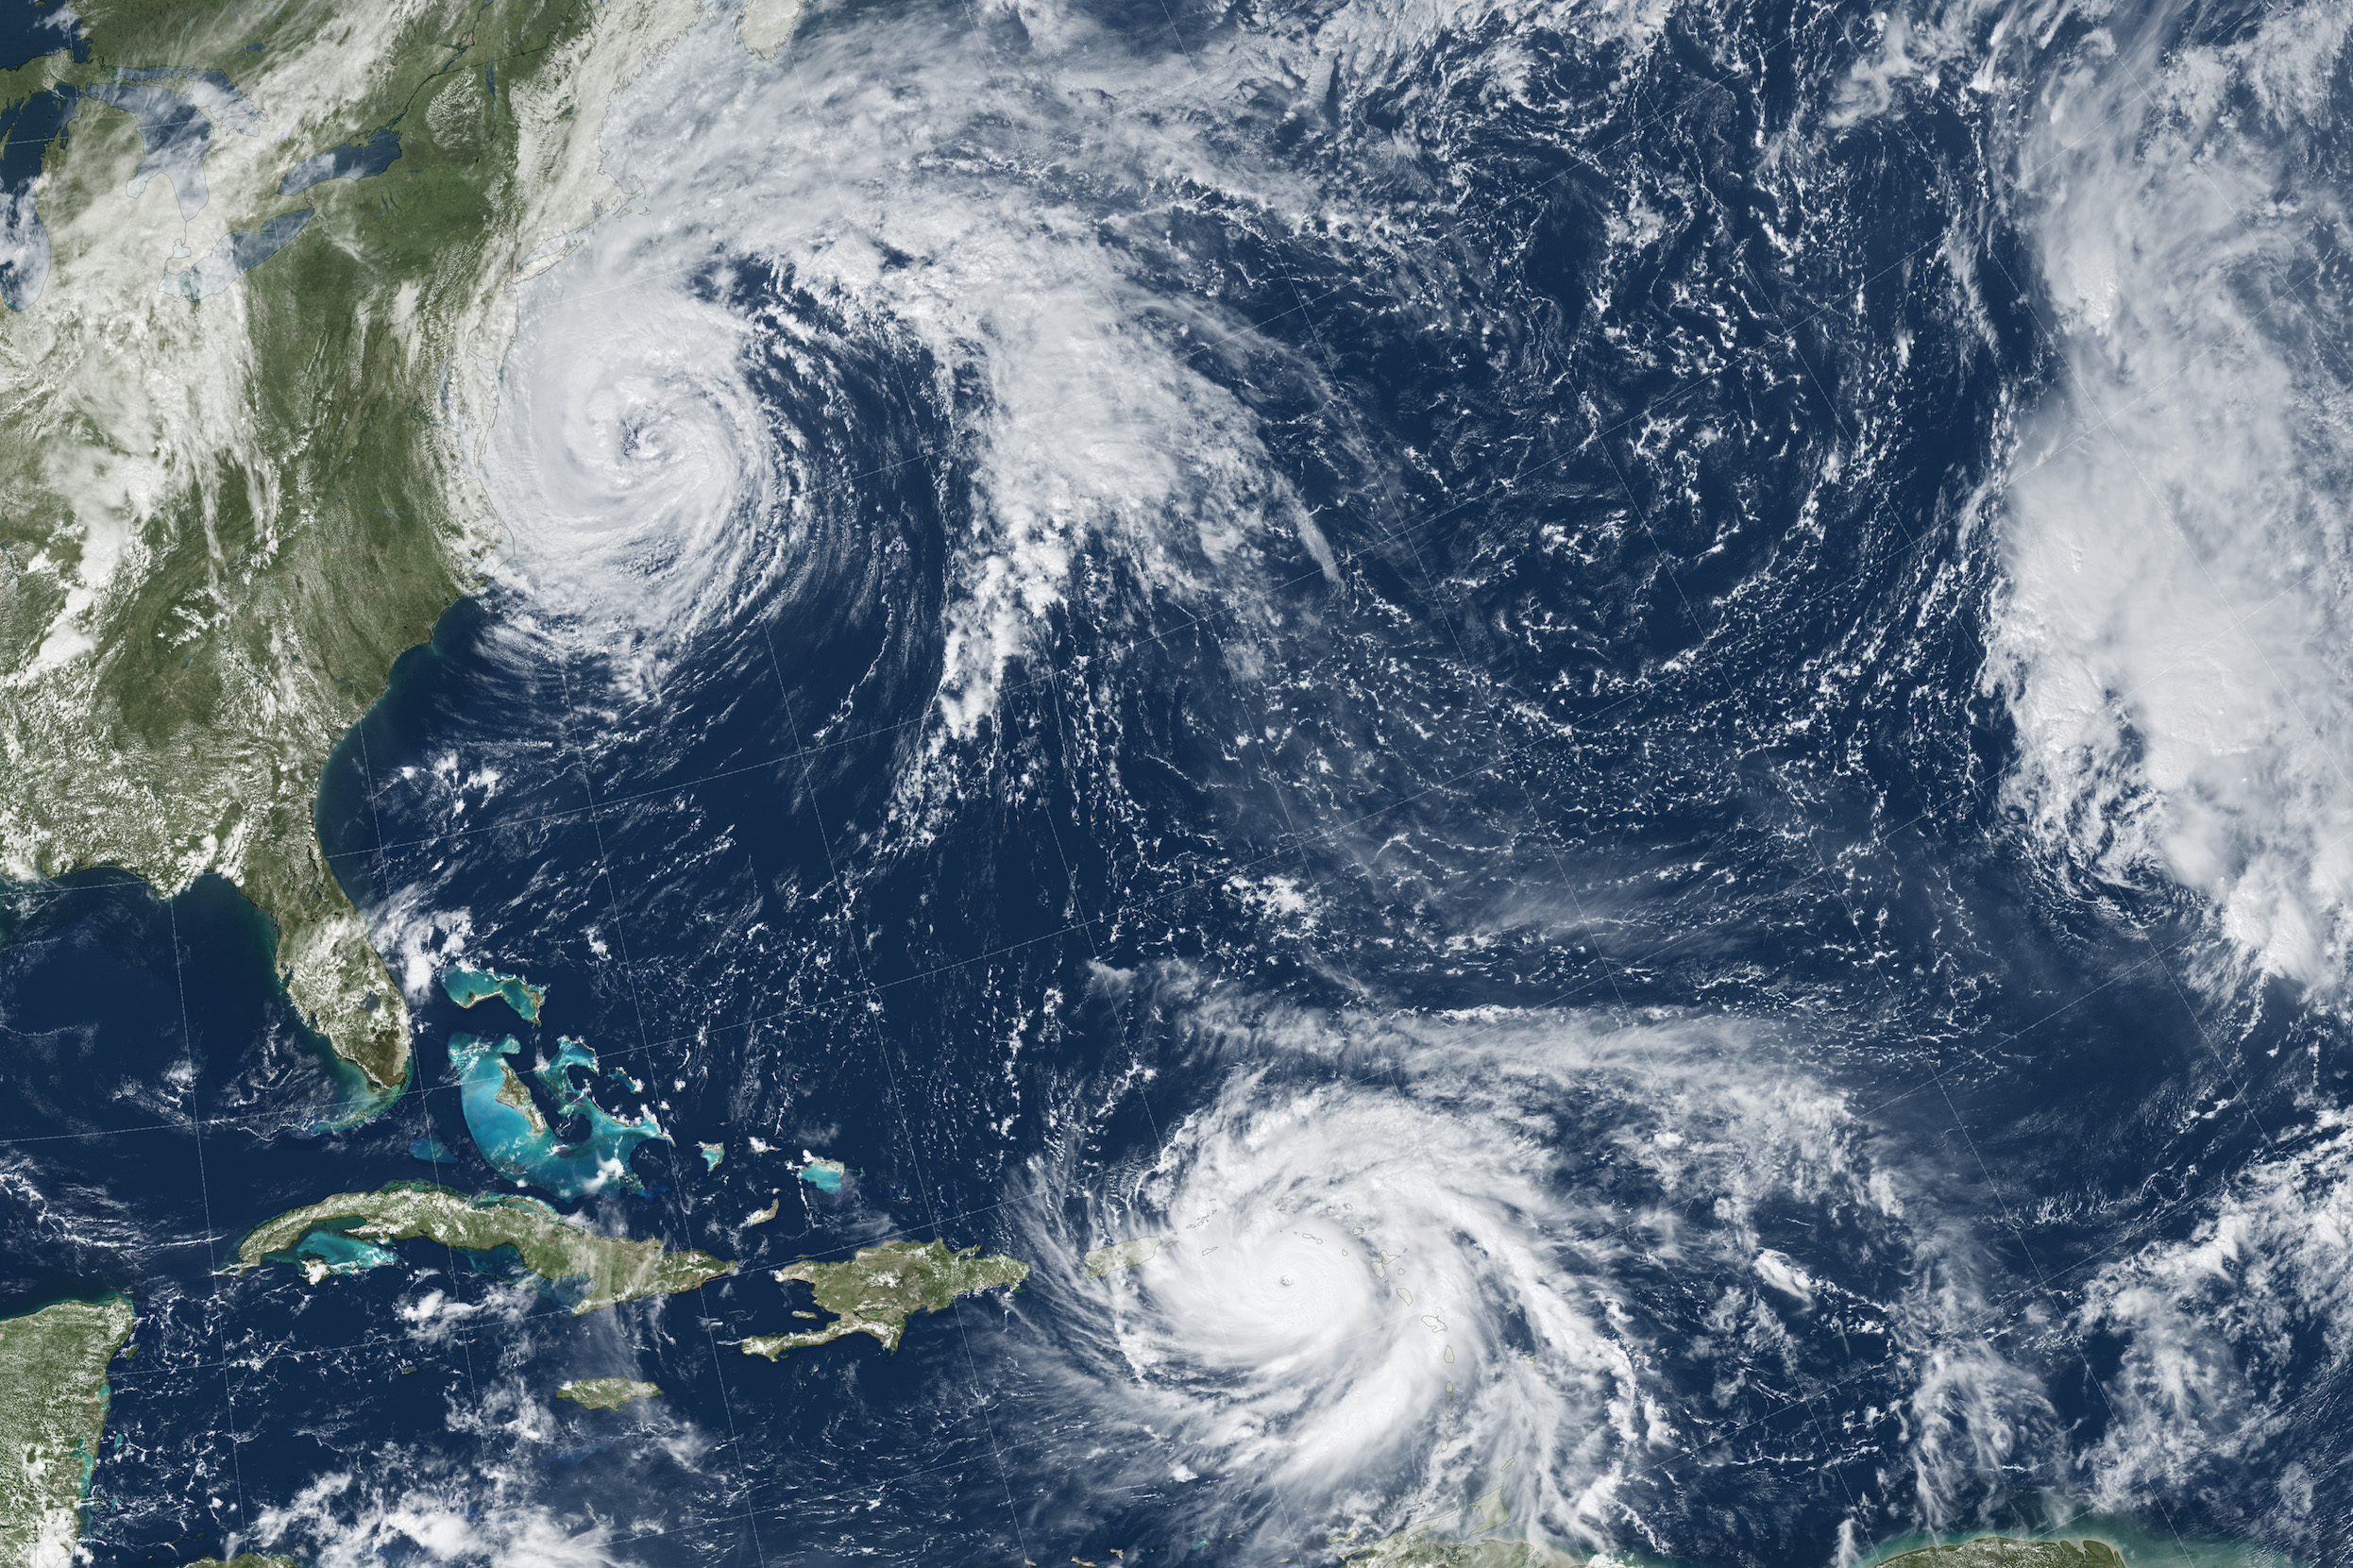 Today's Image of the Day comes thanks to the NASA Earth Observatory and features a look at Hurricanes Maria and Jose spinning through the Atlantic.